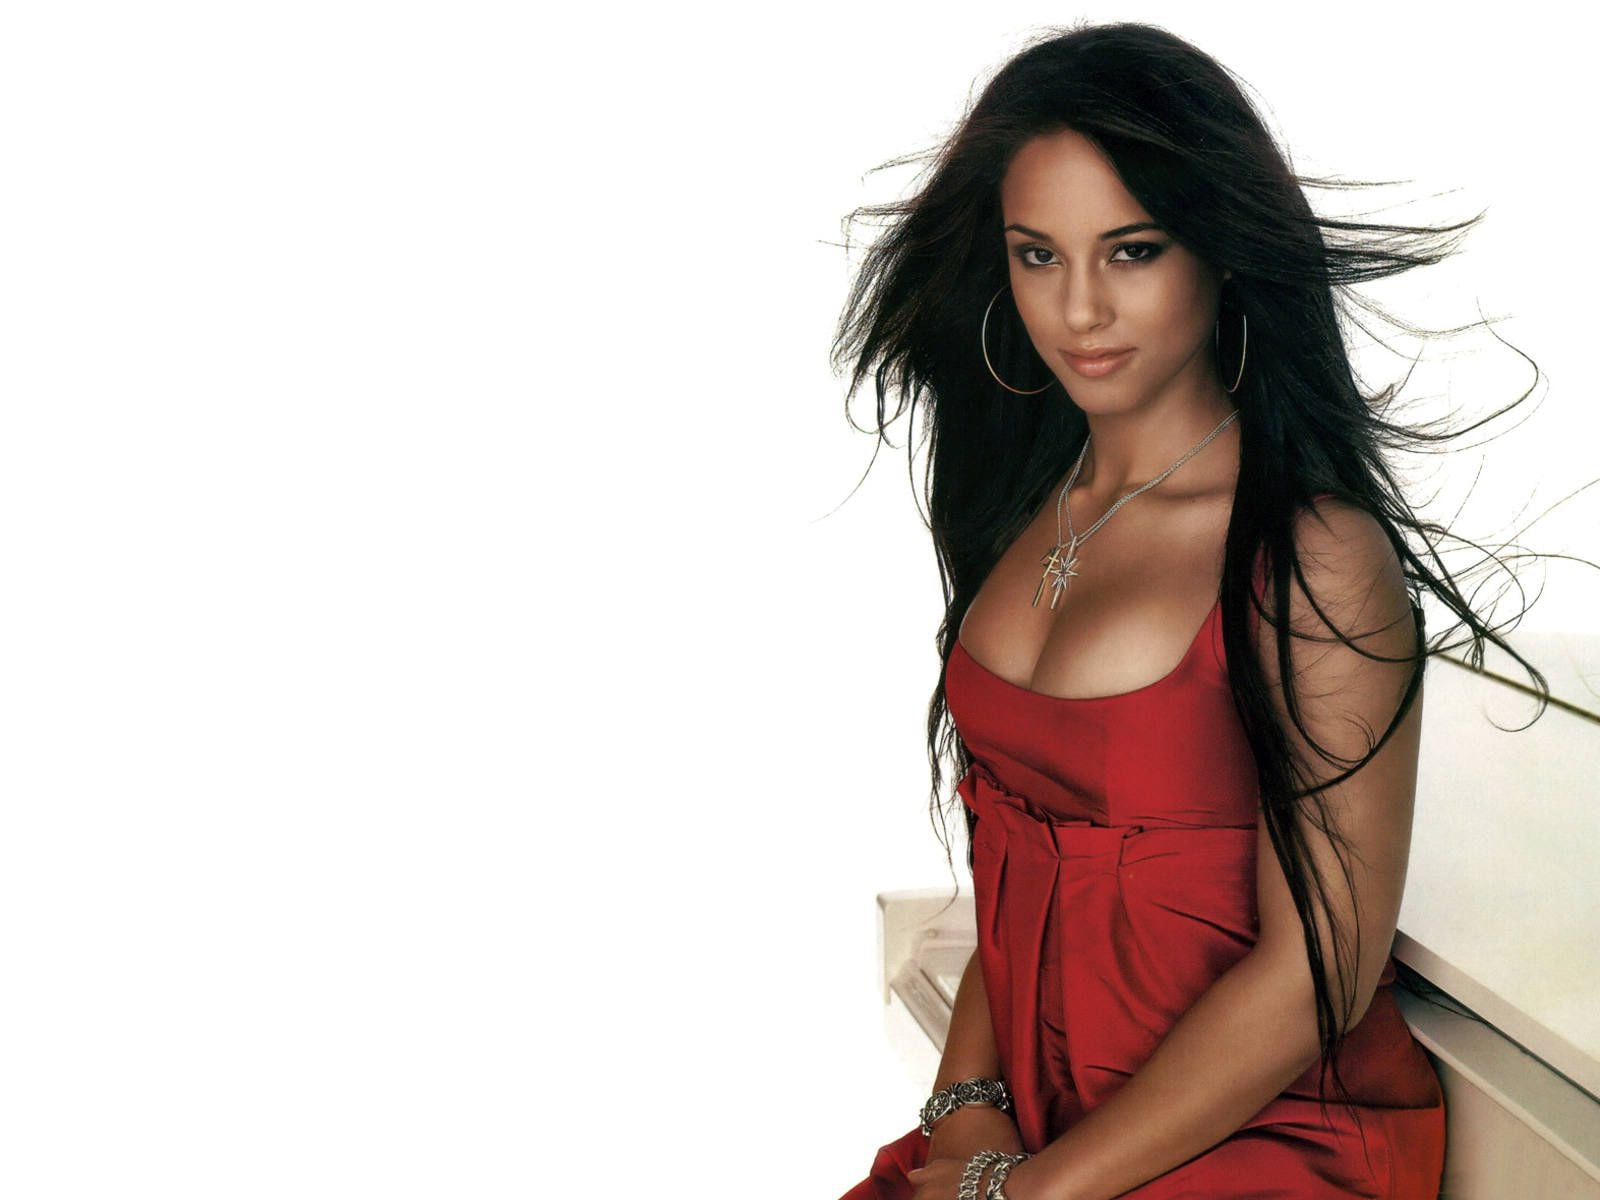 Car Hd Wallpapers Free Download For Pc 31 Alicia Keys Wallpapers Hd Download